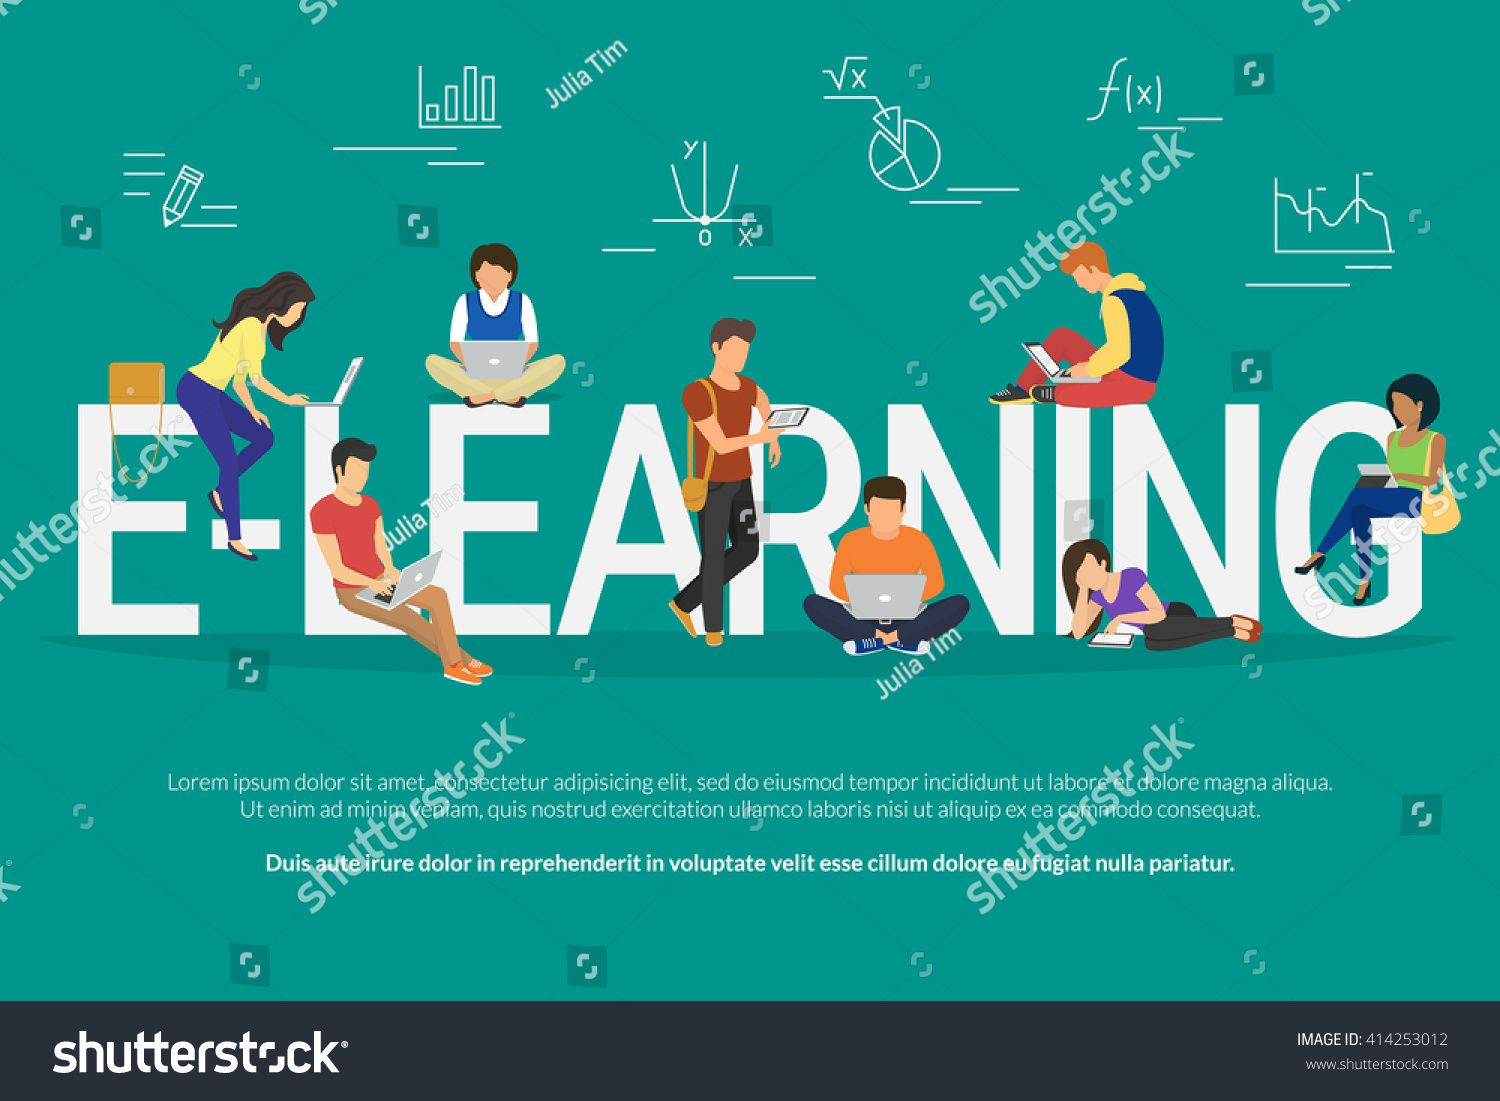 E Learning School Vector Illustration Of Young People Using Laptop Tablet And Smartphone For Online Distance Stu Check Email Mobile Computing Protection Plans